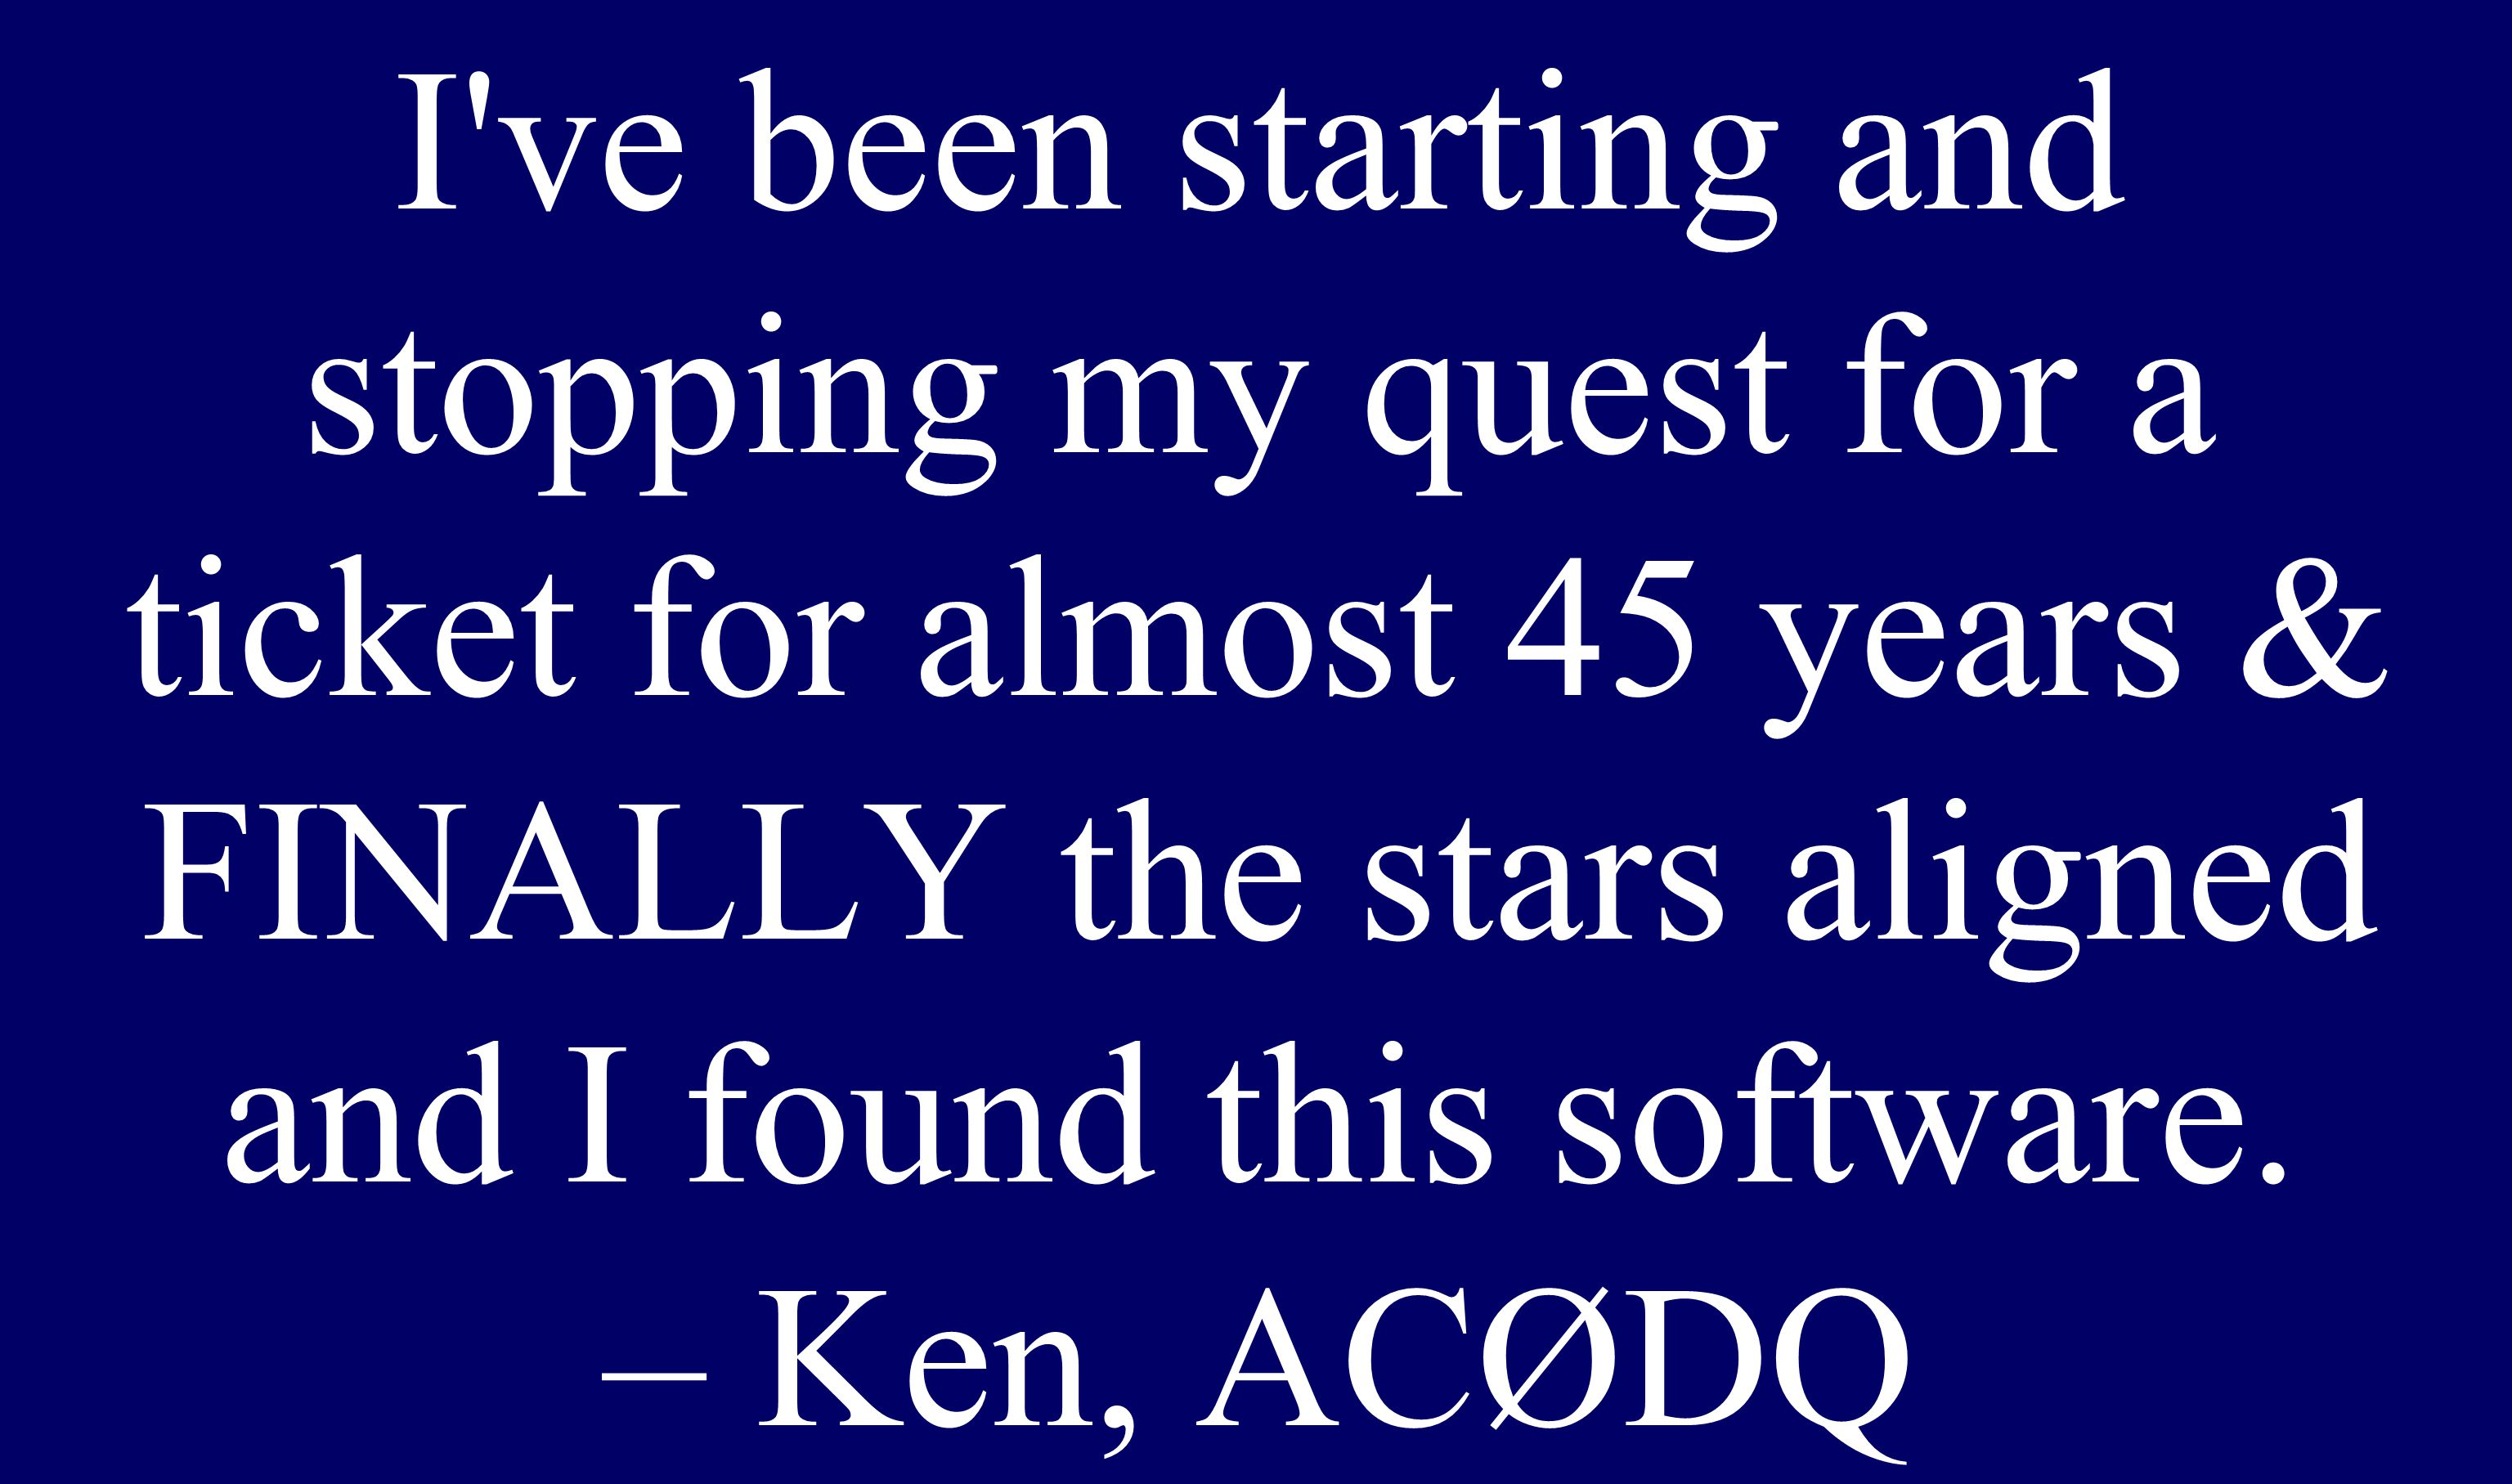 Seniors I've been starting and stopping my quest for a ticket for almost 45 years & FINALLY the stars aligned and I found this software. – Ken, ACØDQ